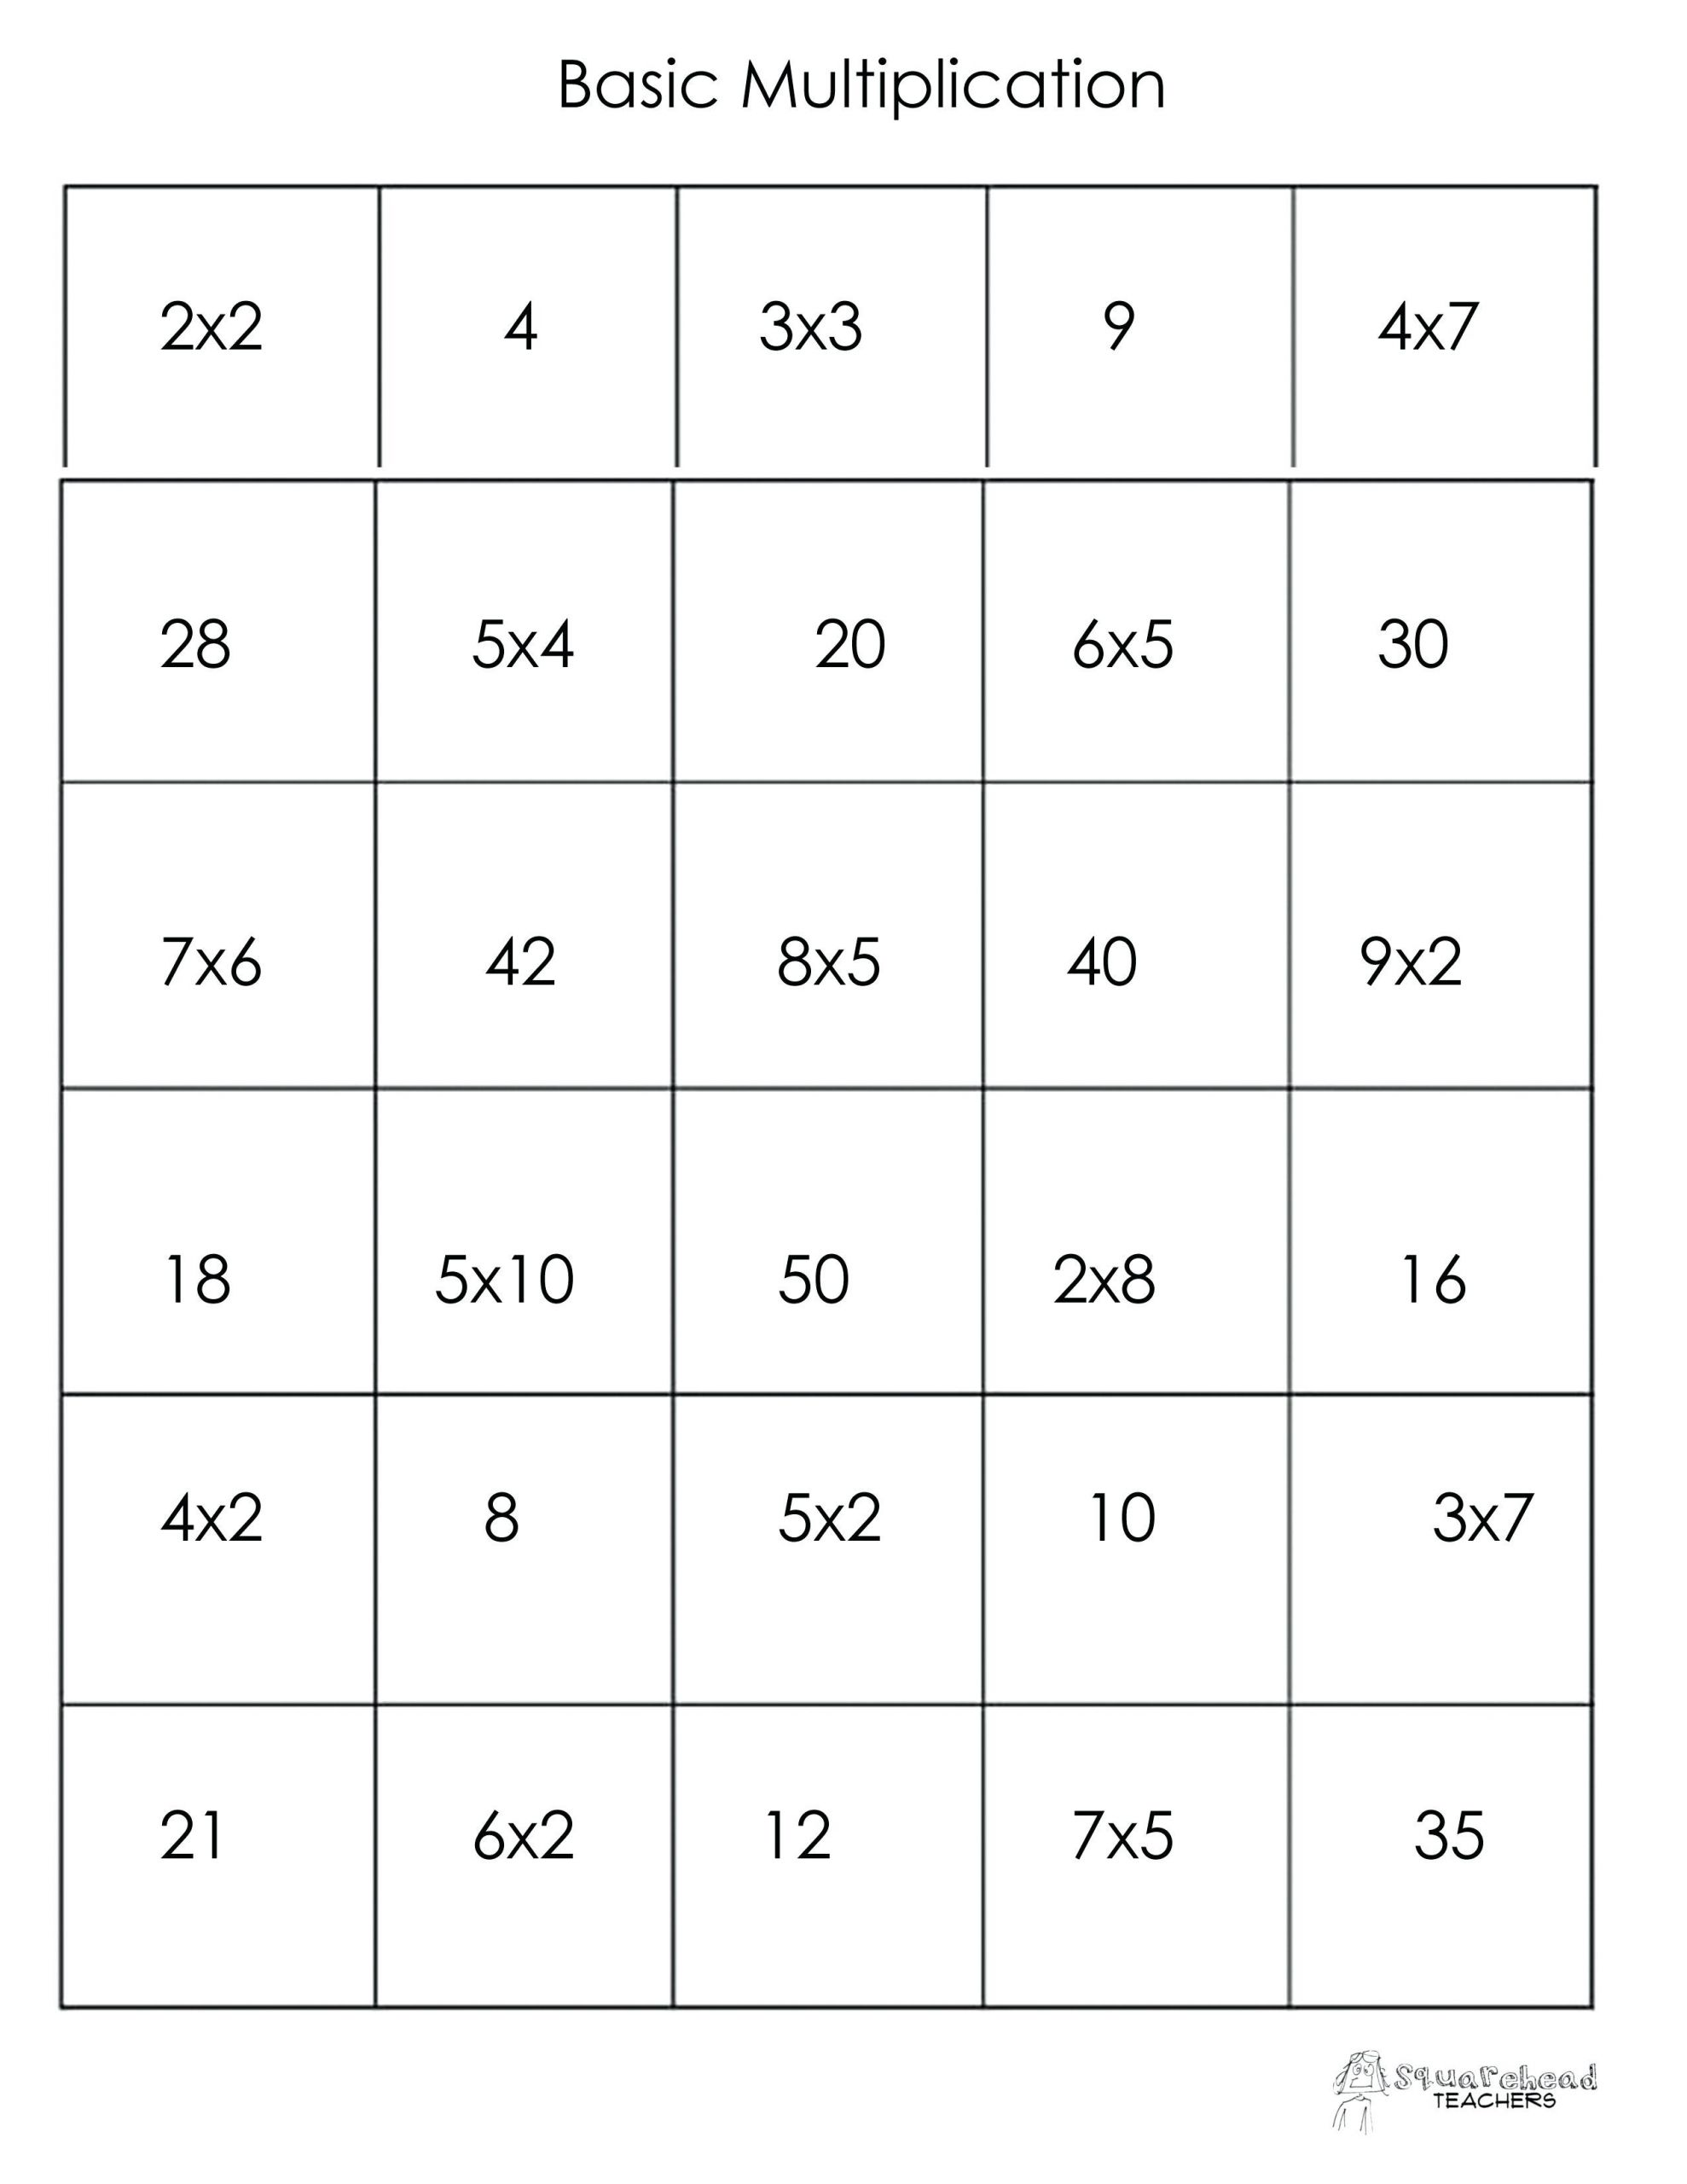 hight resolution of 3 Free Math Worksheets Second Grade 2 Counting Money Counting Money Pennies  Nickels Dimes Quarters - apocalomegaproductions.com